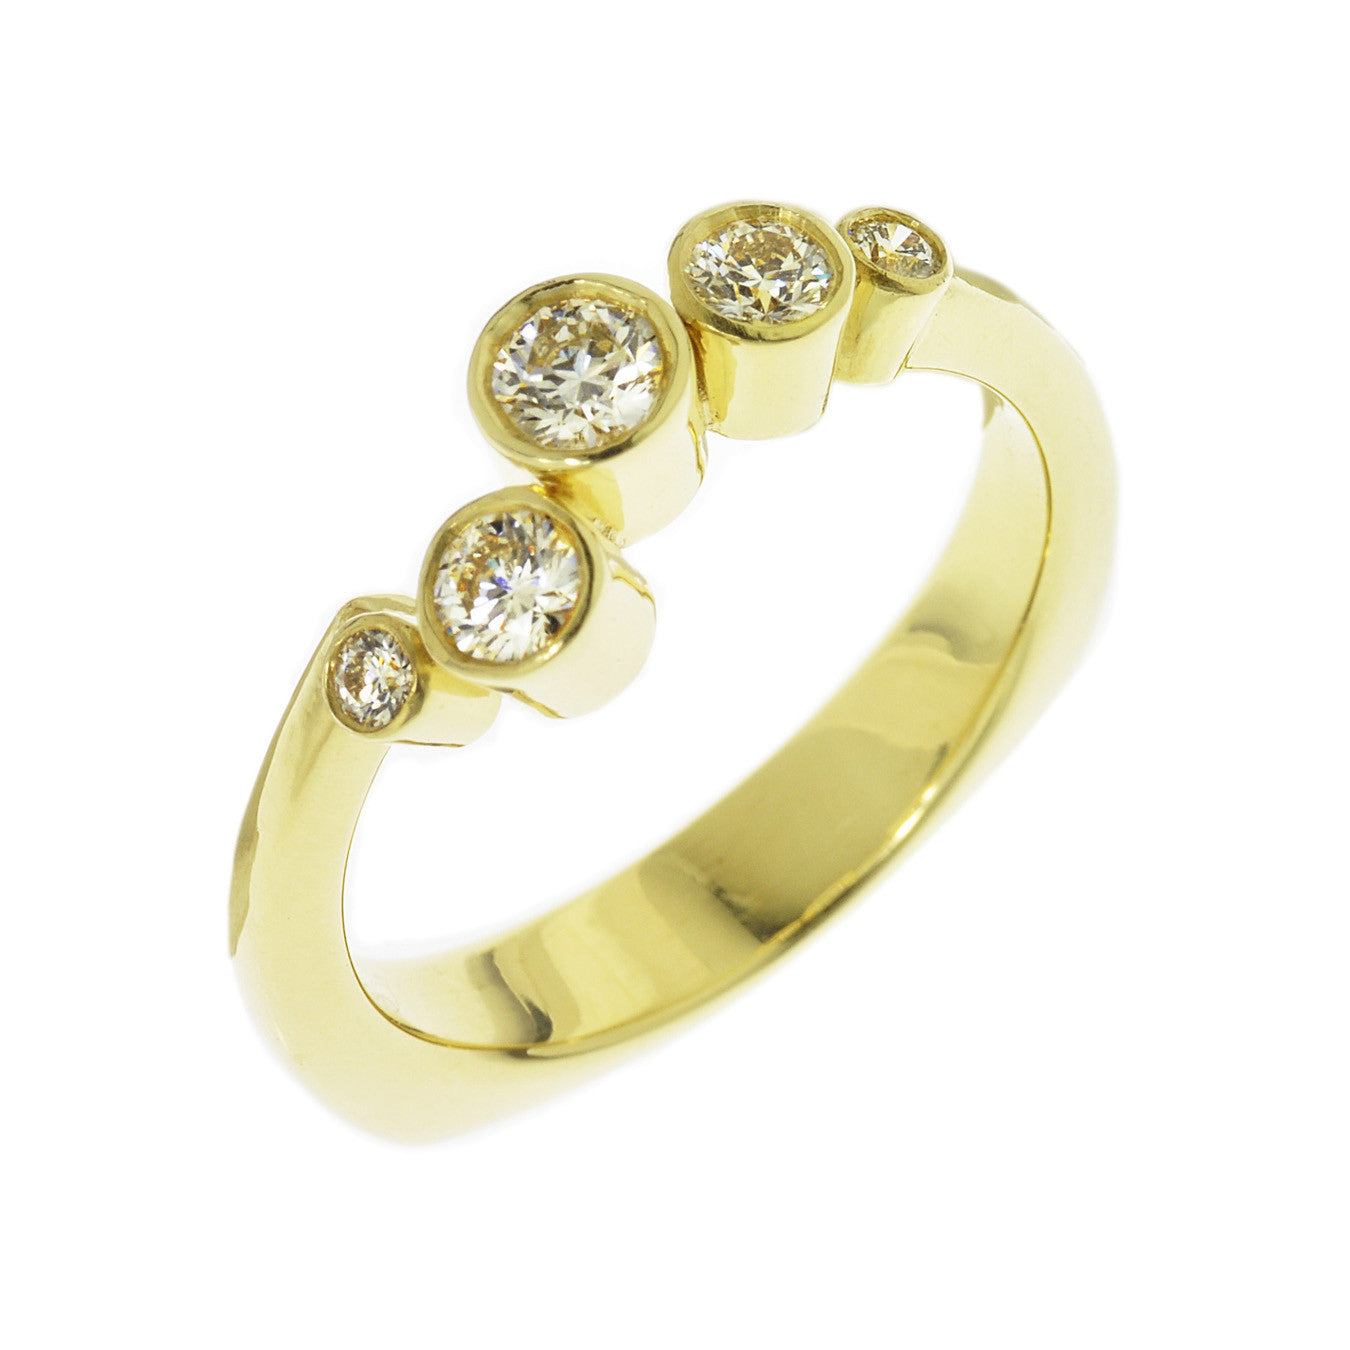 "Toby Pomeroy ""Elata"" 18K True Gold Diamond Engagement Ring"